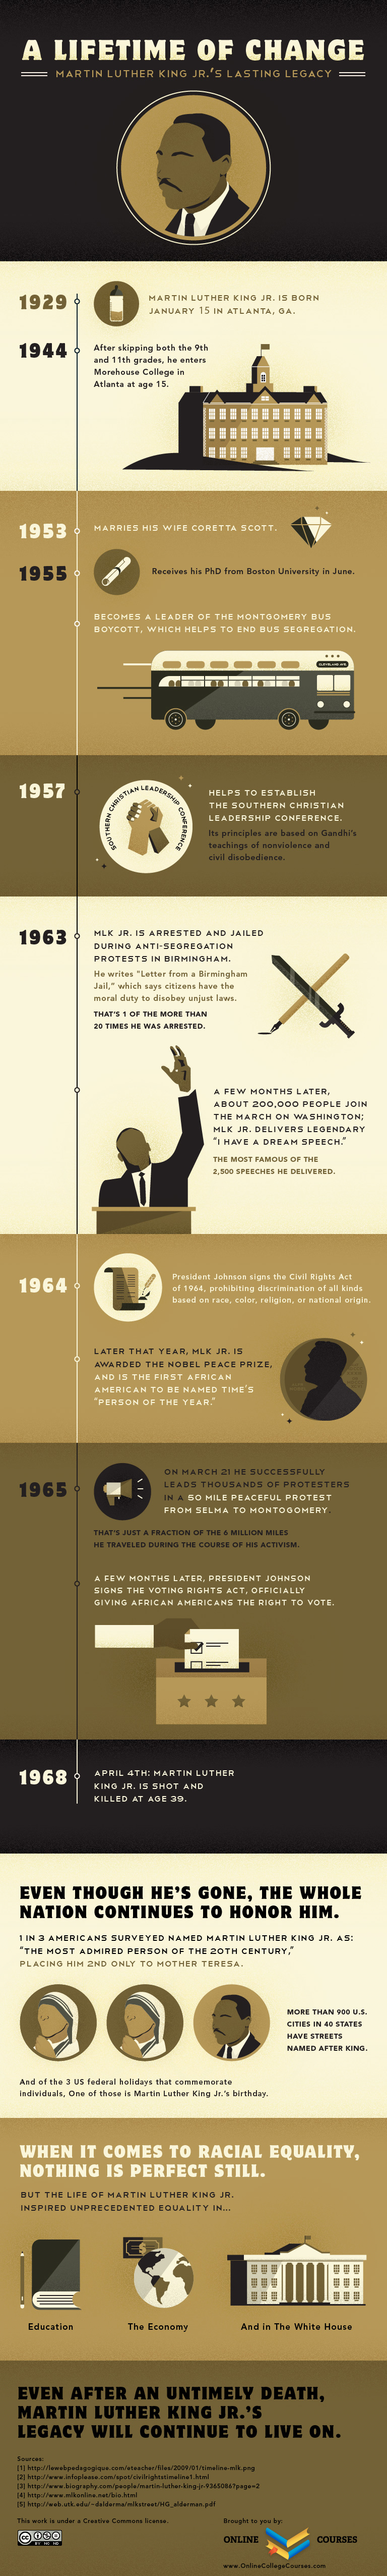 The Timeline Of Martin Luther King Jr